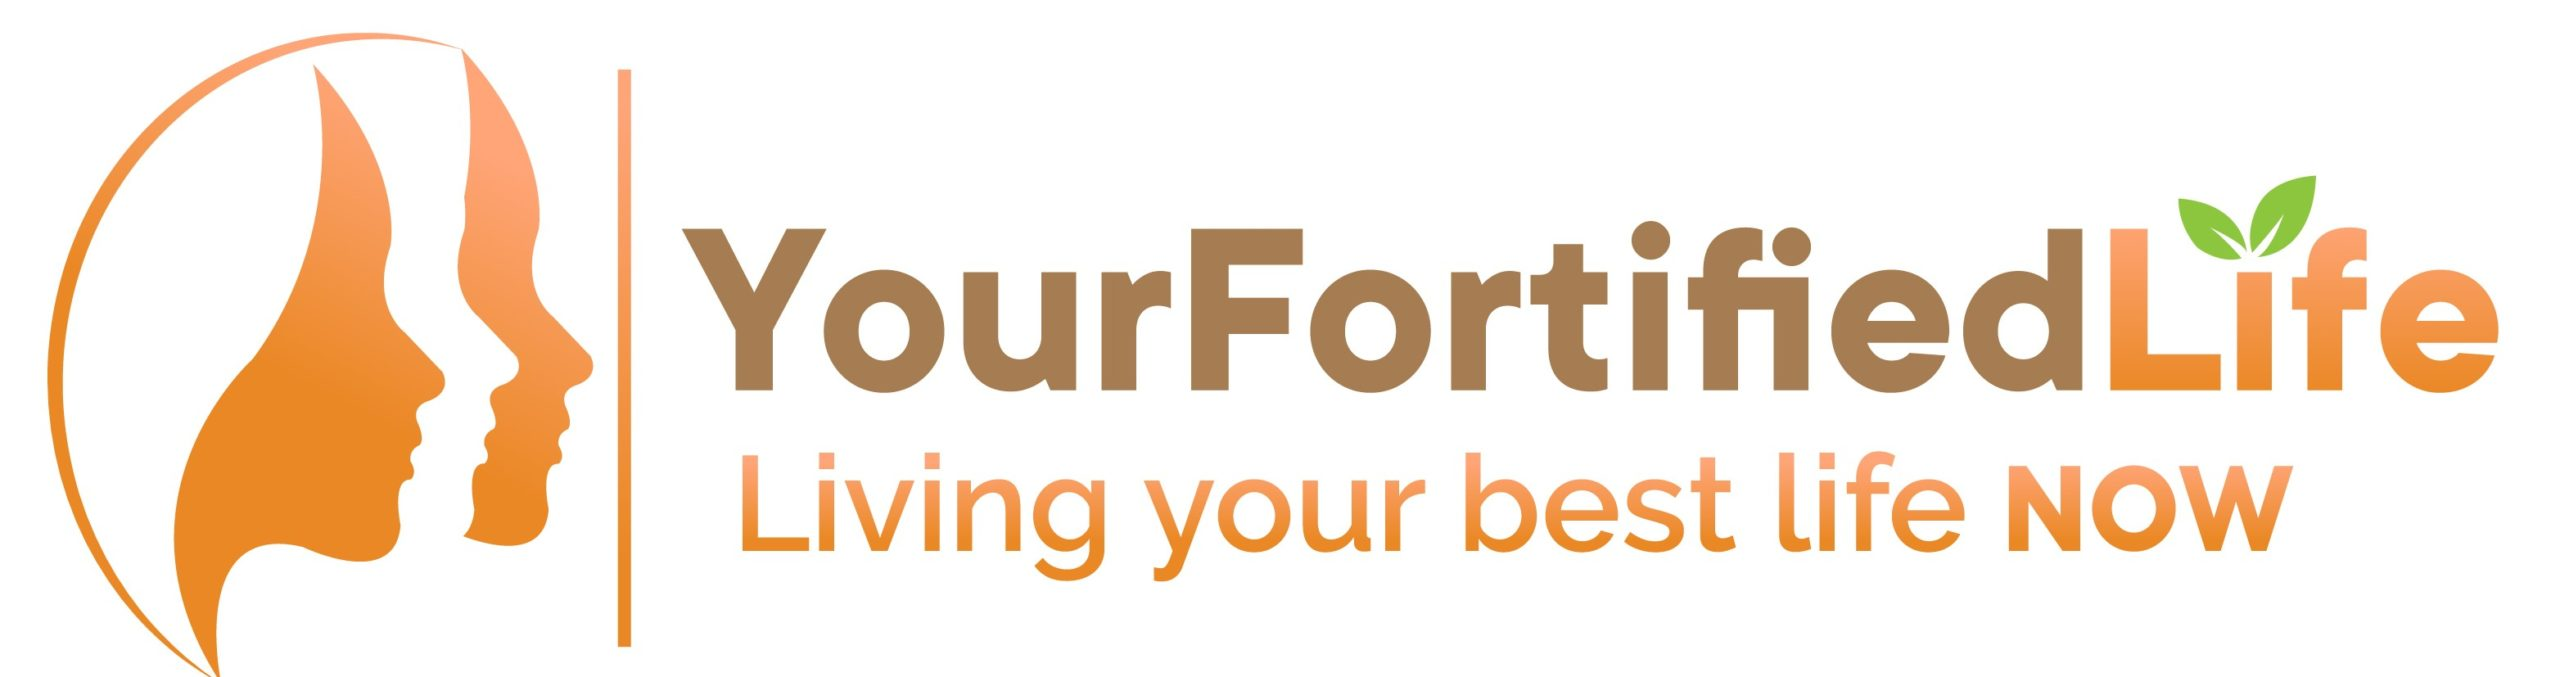 YourFortifiedLife.com